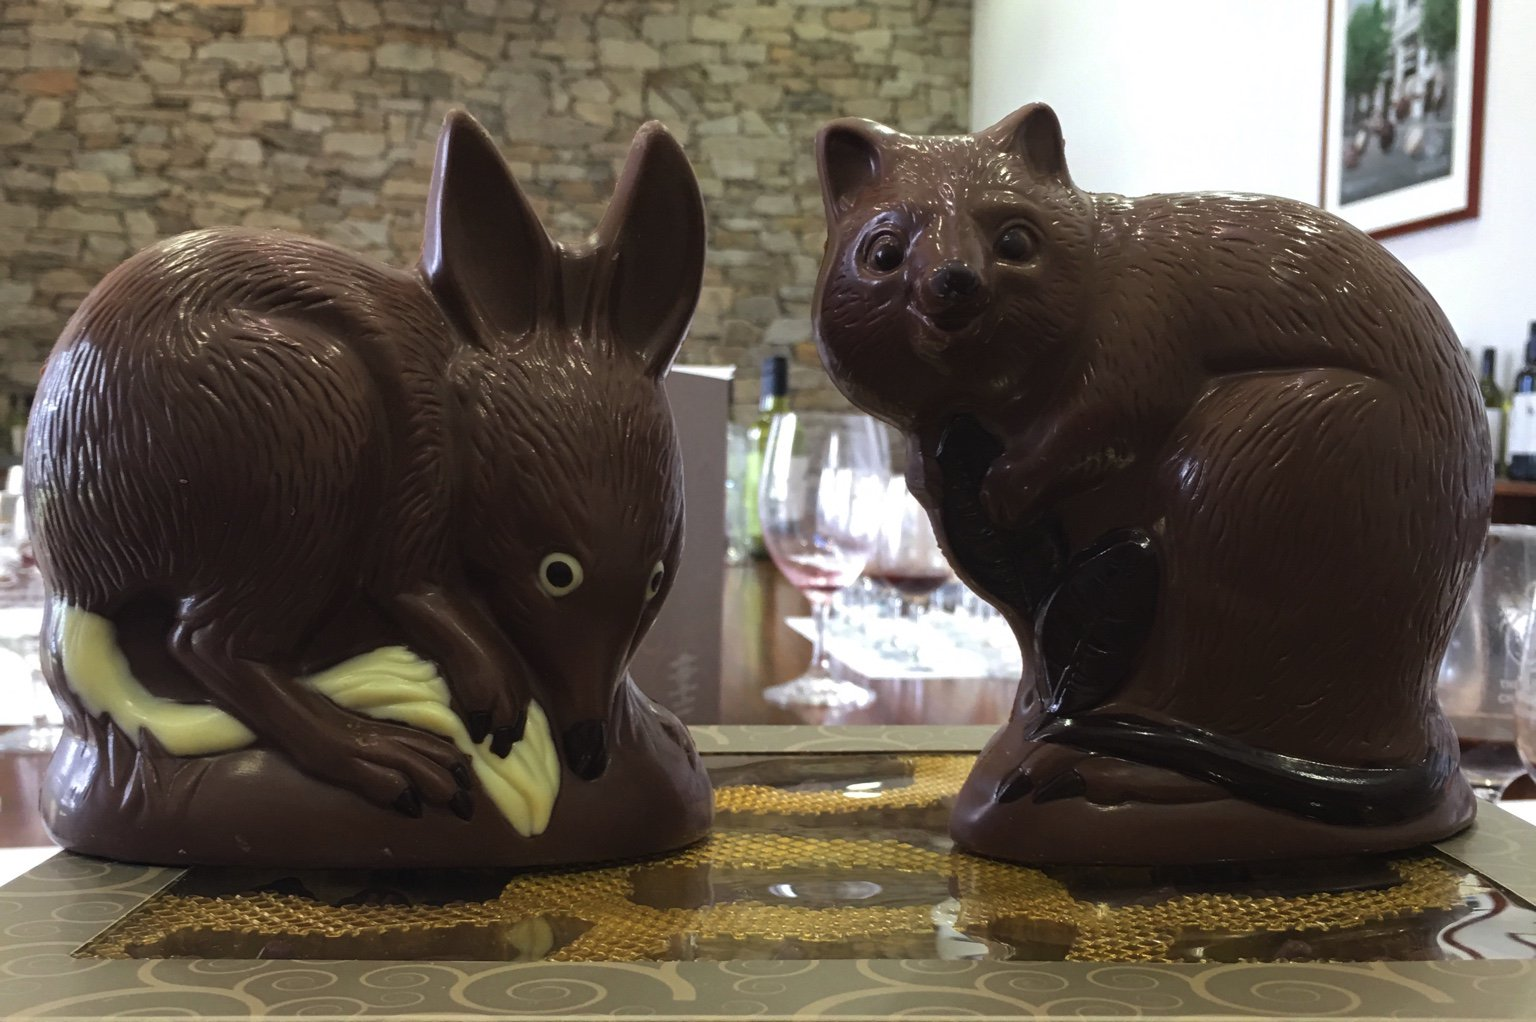 Chocolate quenda & chocolate quokka - hand moulded by us. Highly pleasurable. Deep thanks to @CowardandBlack https://t.co/enBVmX6nz6